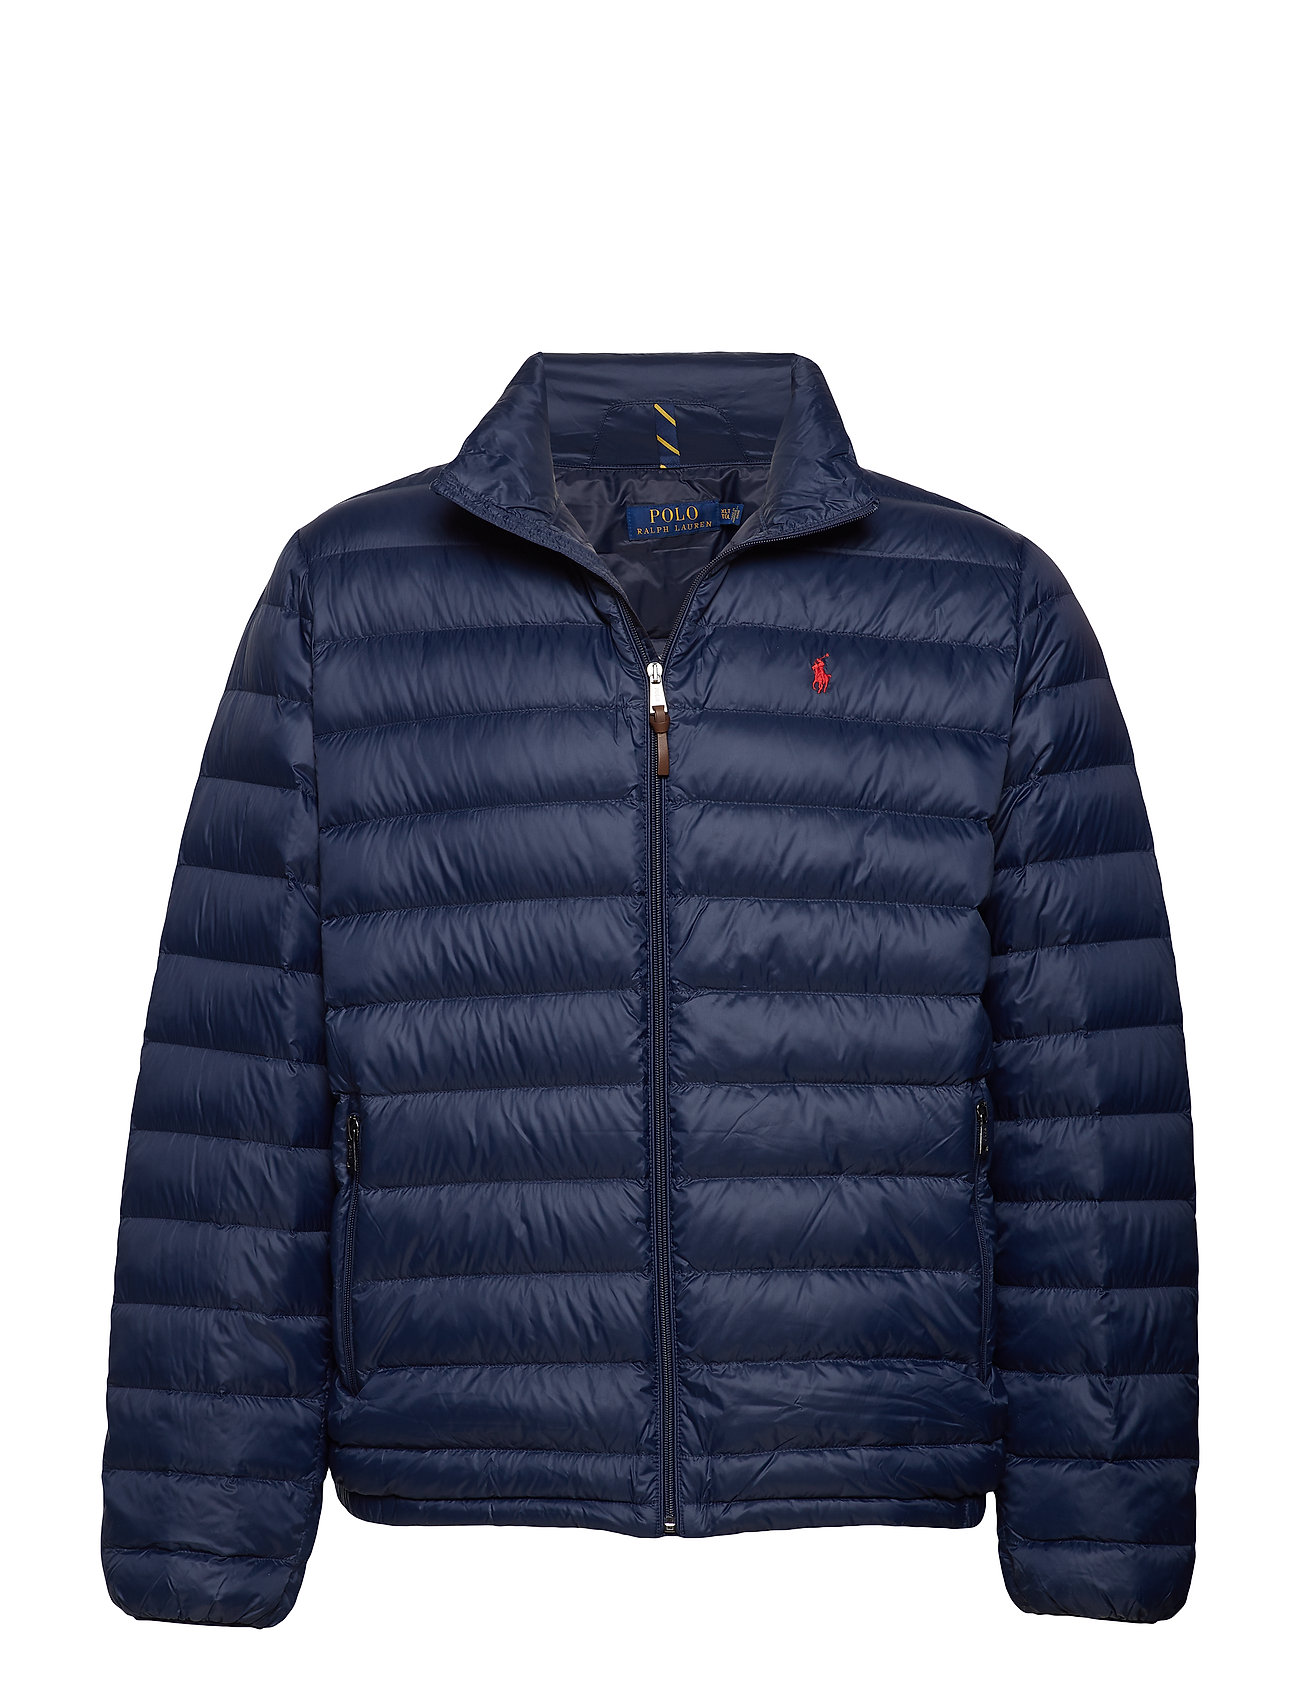 dbc3697c8da3 Packable Quilted Down Jacket (Aviator Navy) (£171) - Polo Ralph ...